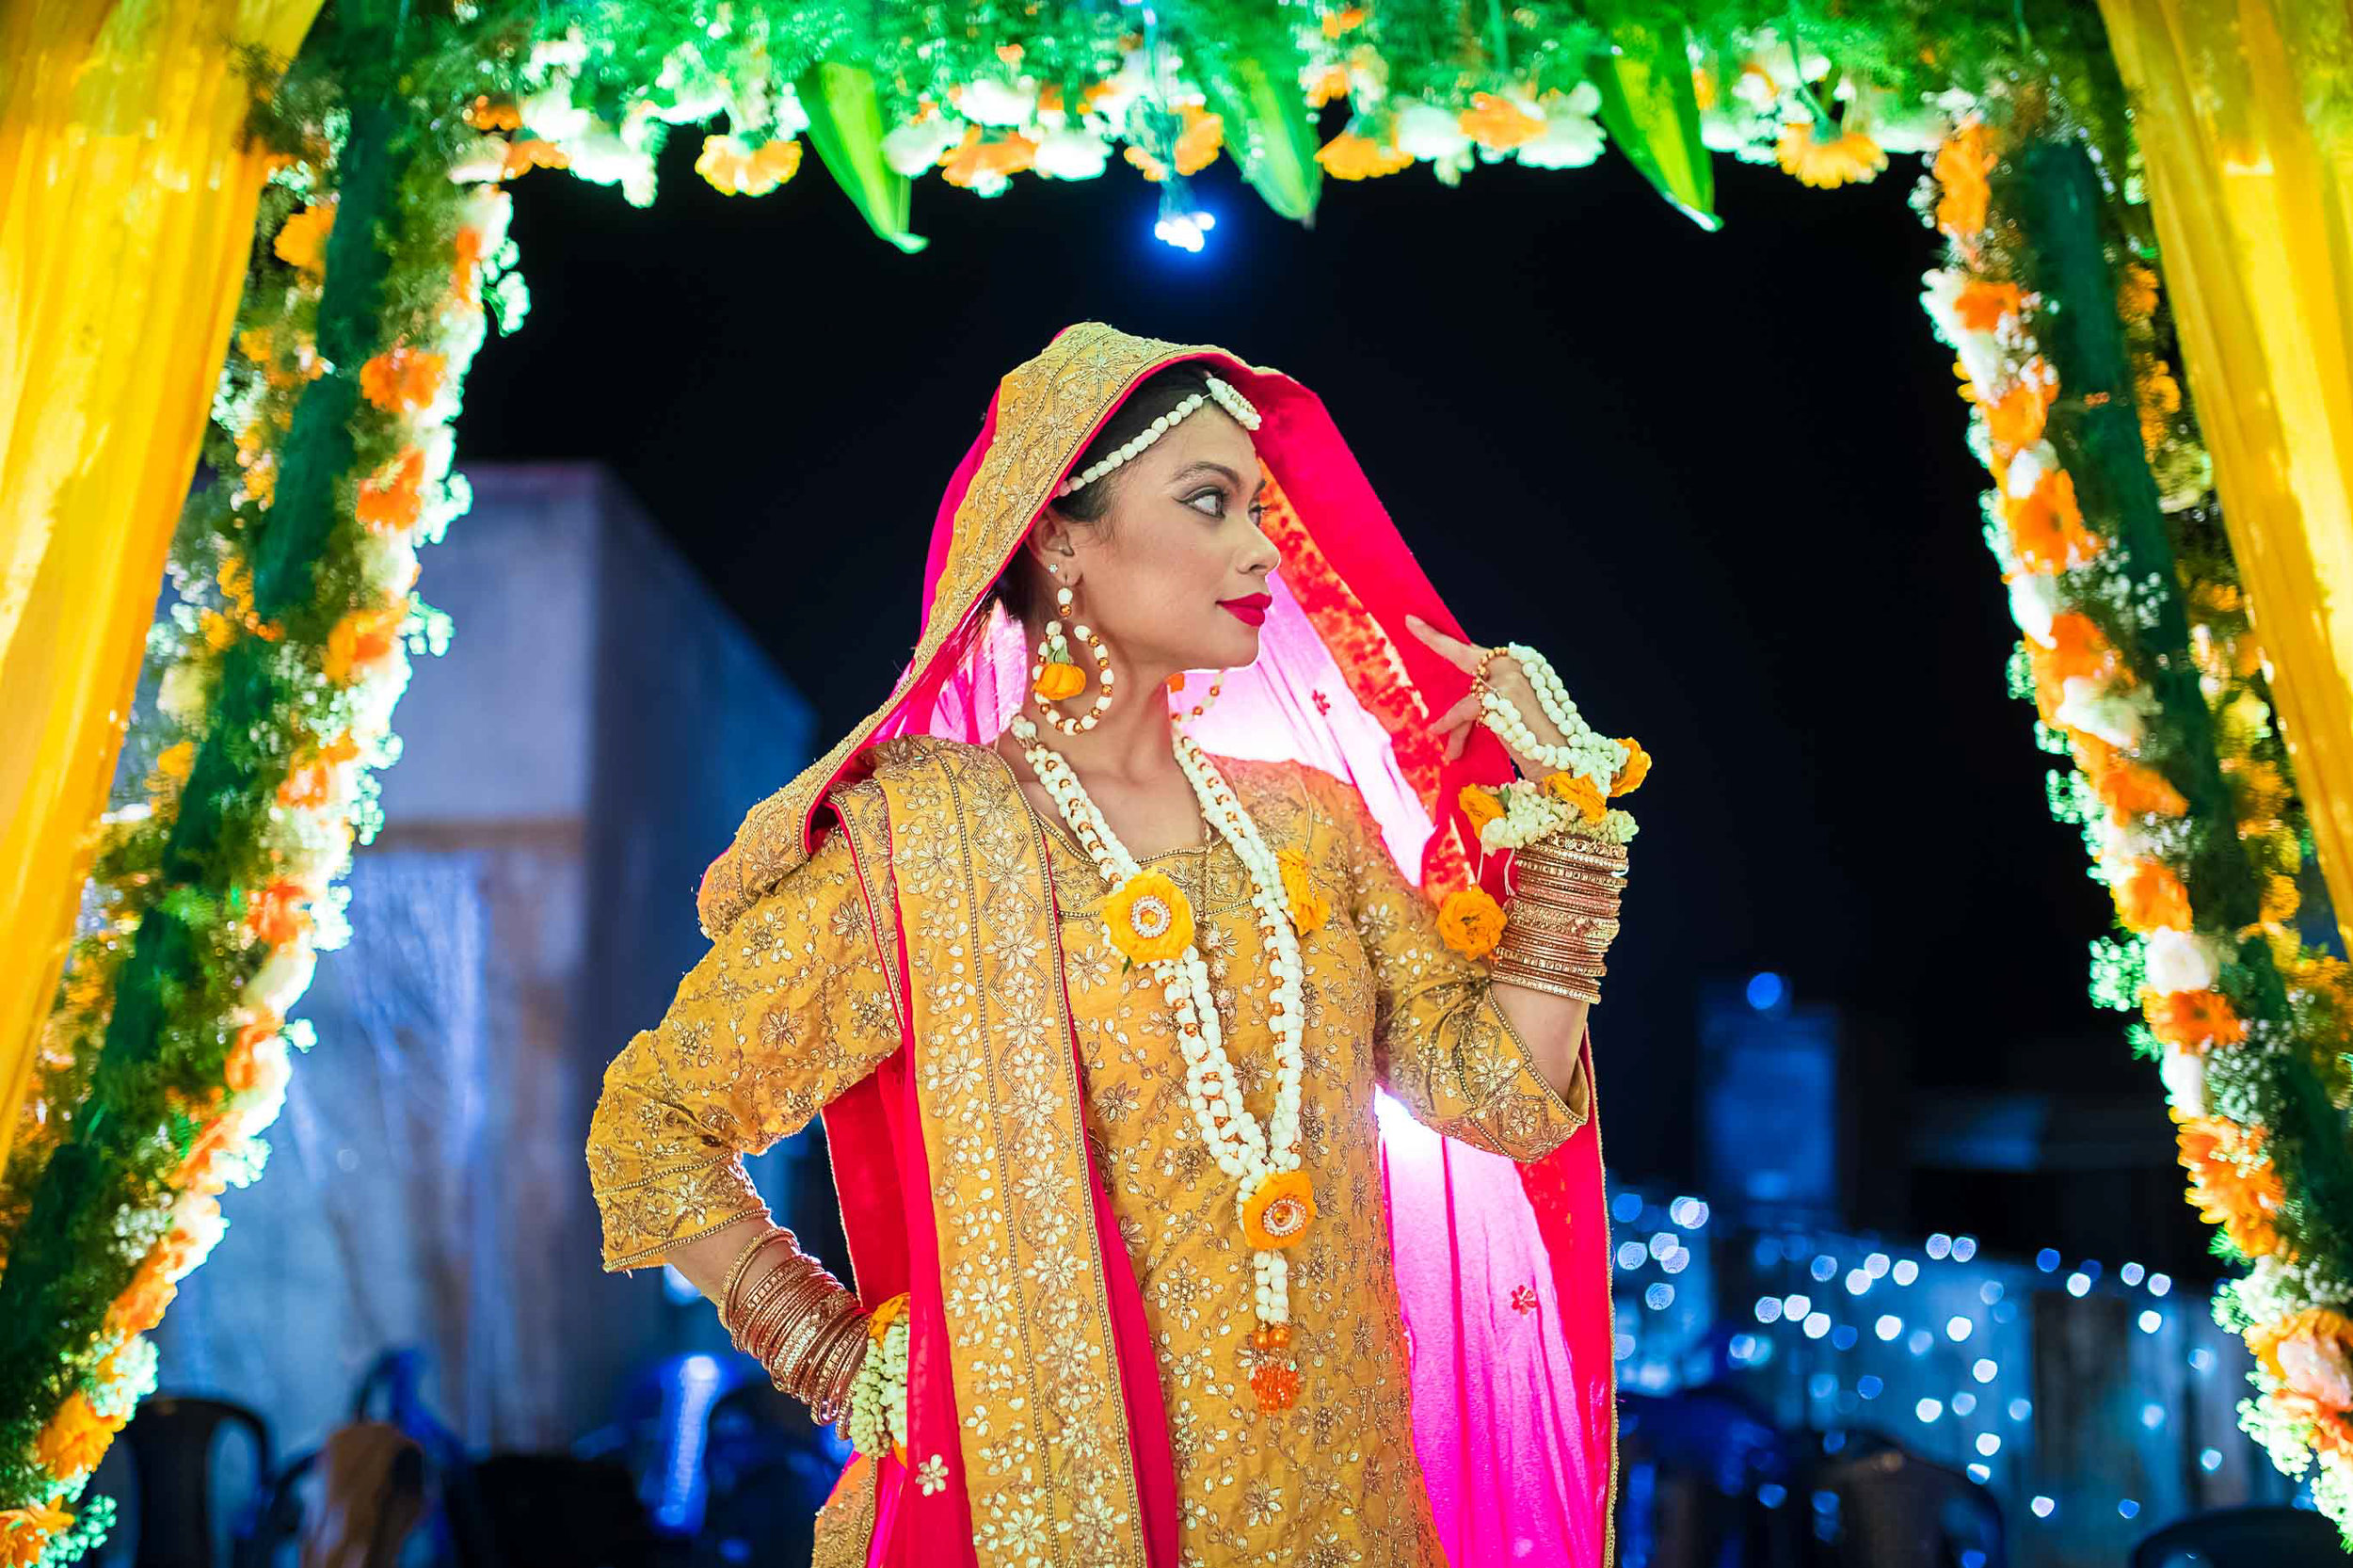 Pixel-Chronicles-Meraj-Yousuf-Candid-Wedding-Documentary-Photography-Haldi-Ceremony-Beautiful-Bride-Portrait-Muslim-Wedding-8.jpg